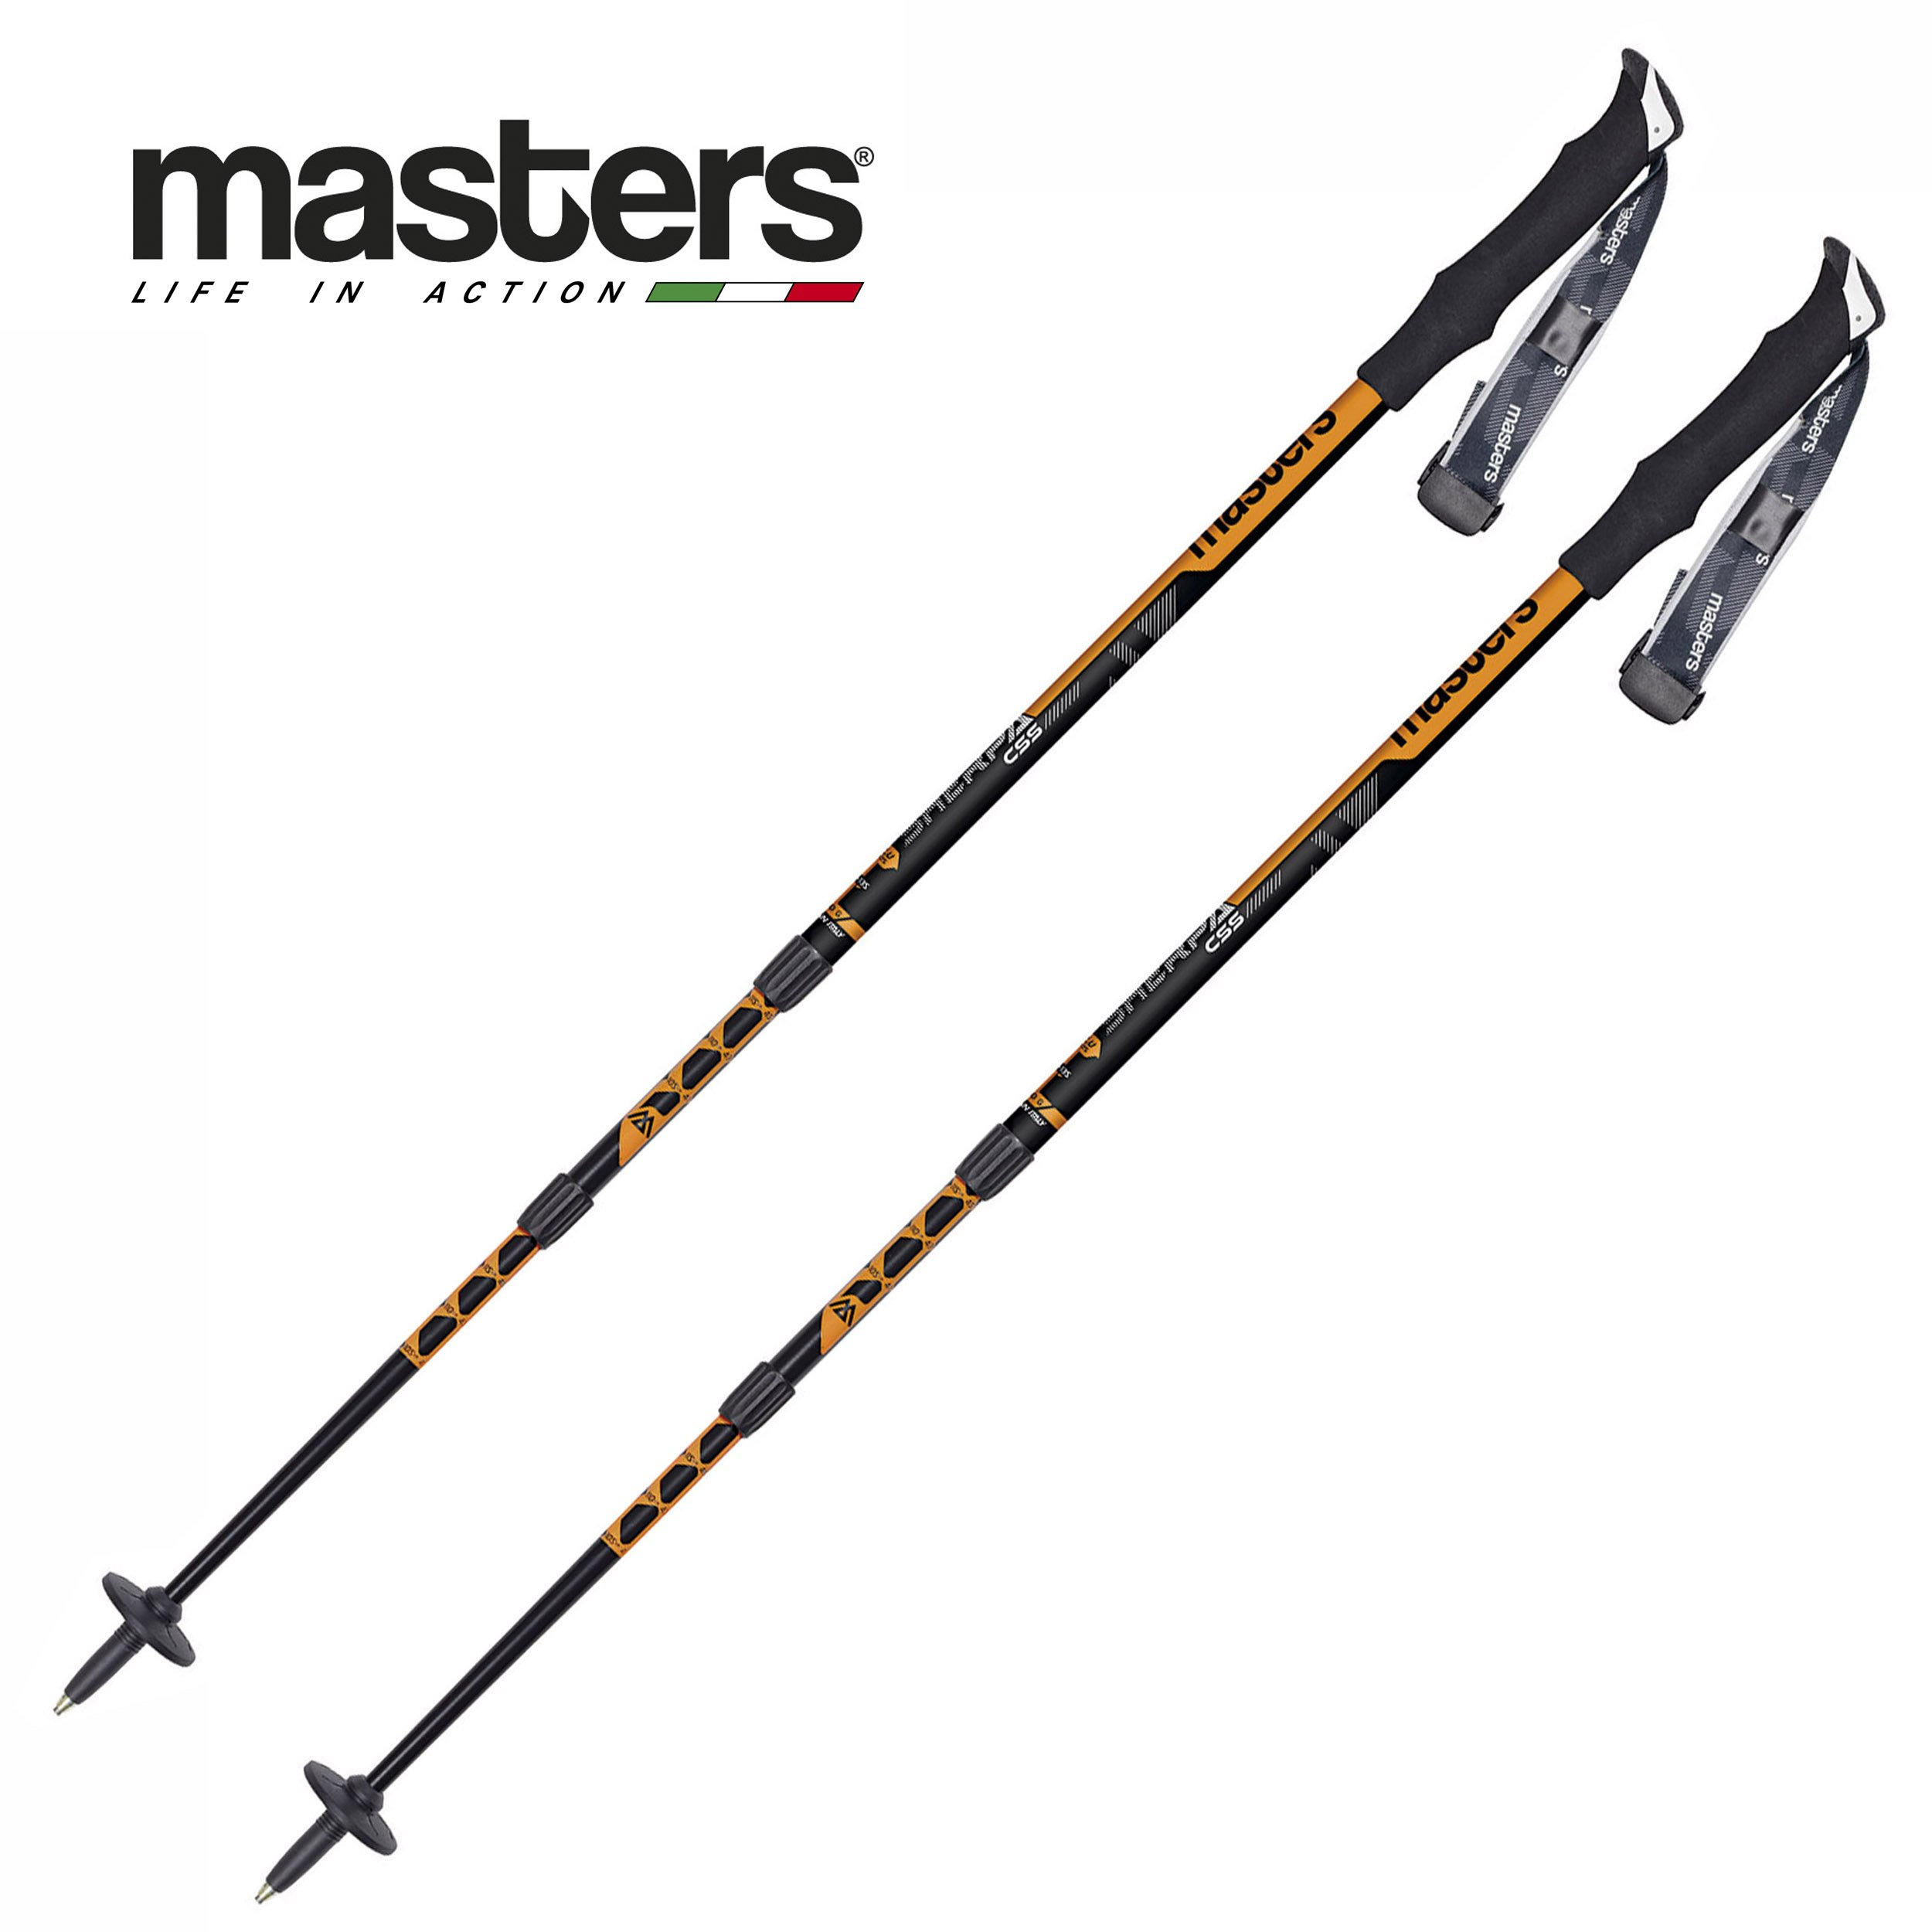 Masters Sherpa CSS Trekking Poles with Cushioning